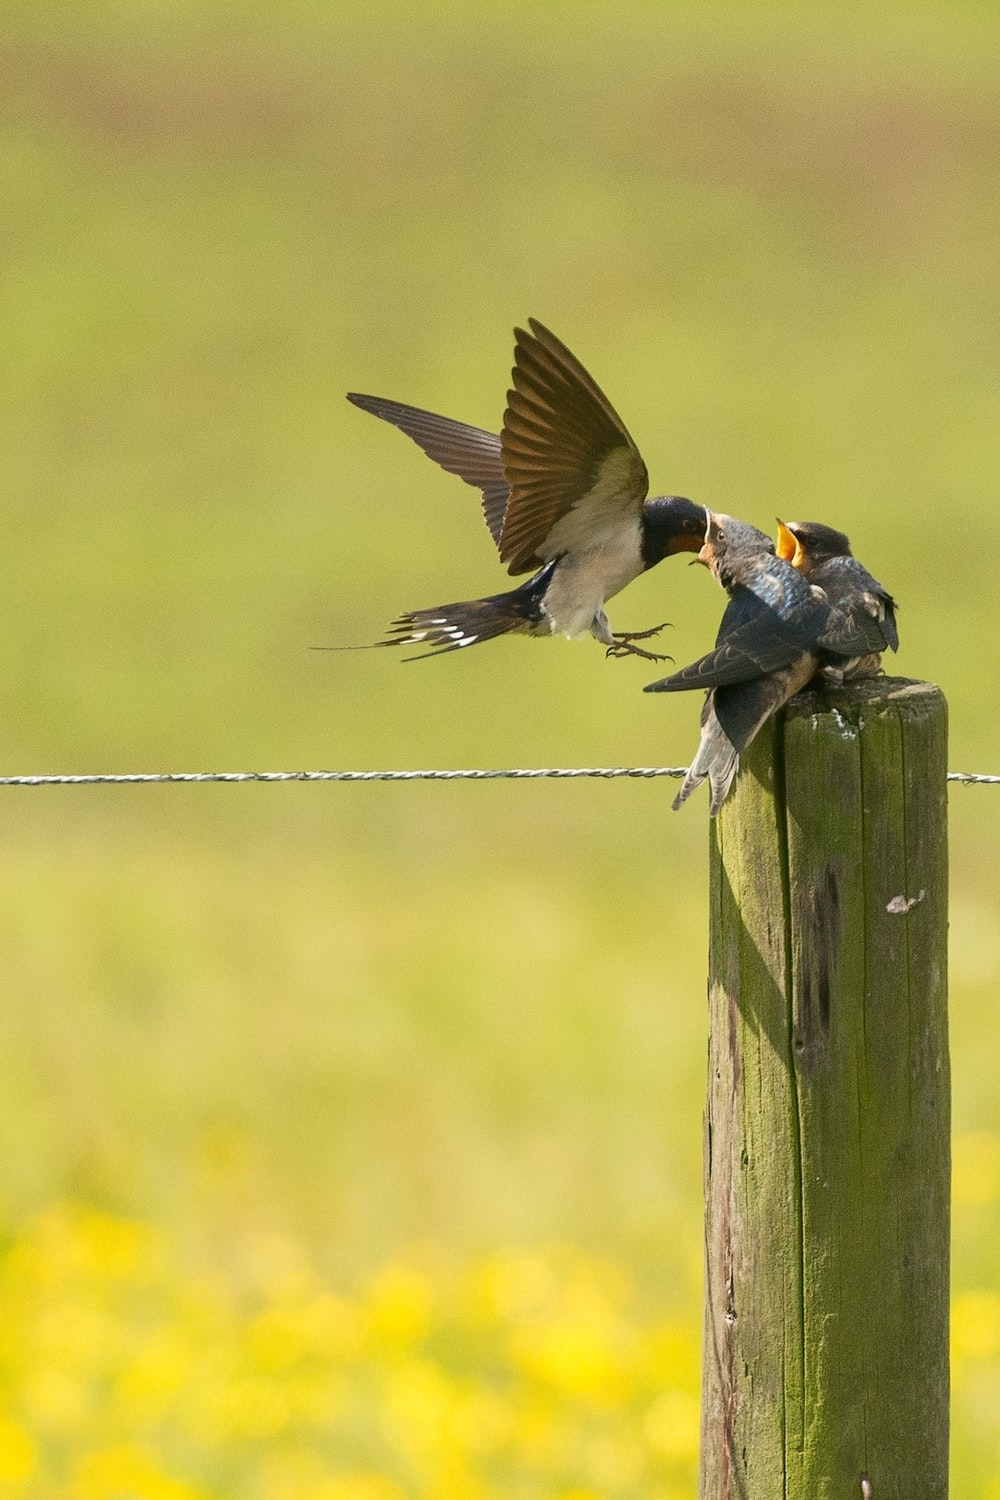 shallow focus photography of bird feeding two bird chicks